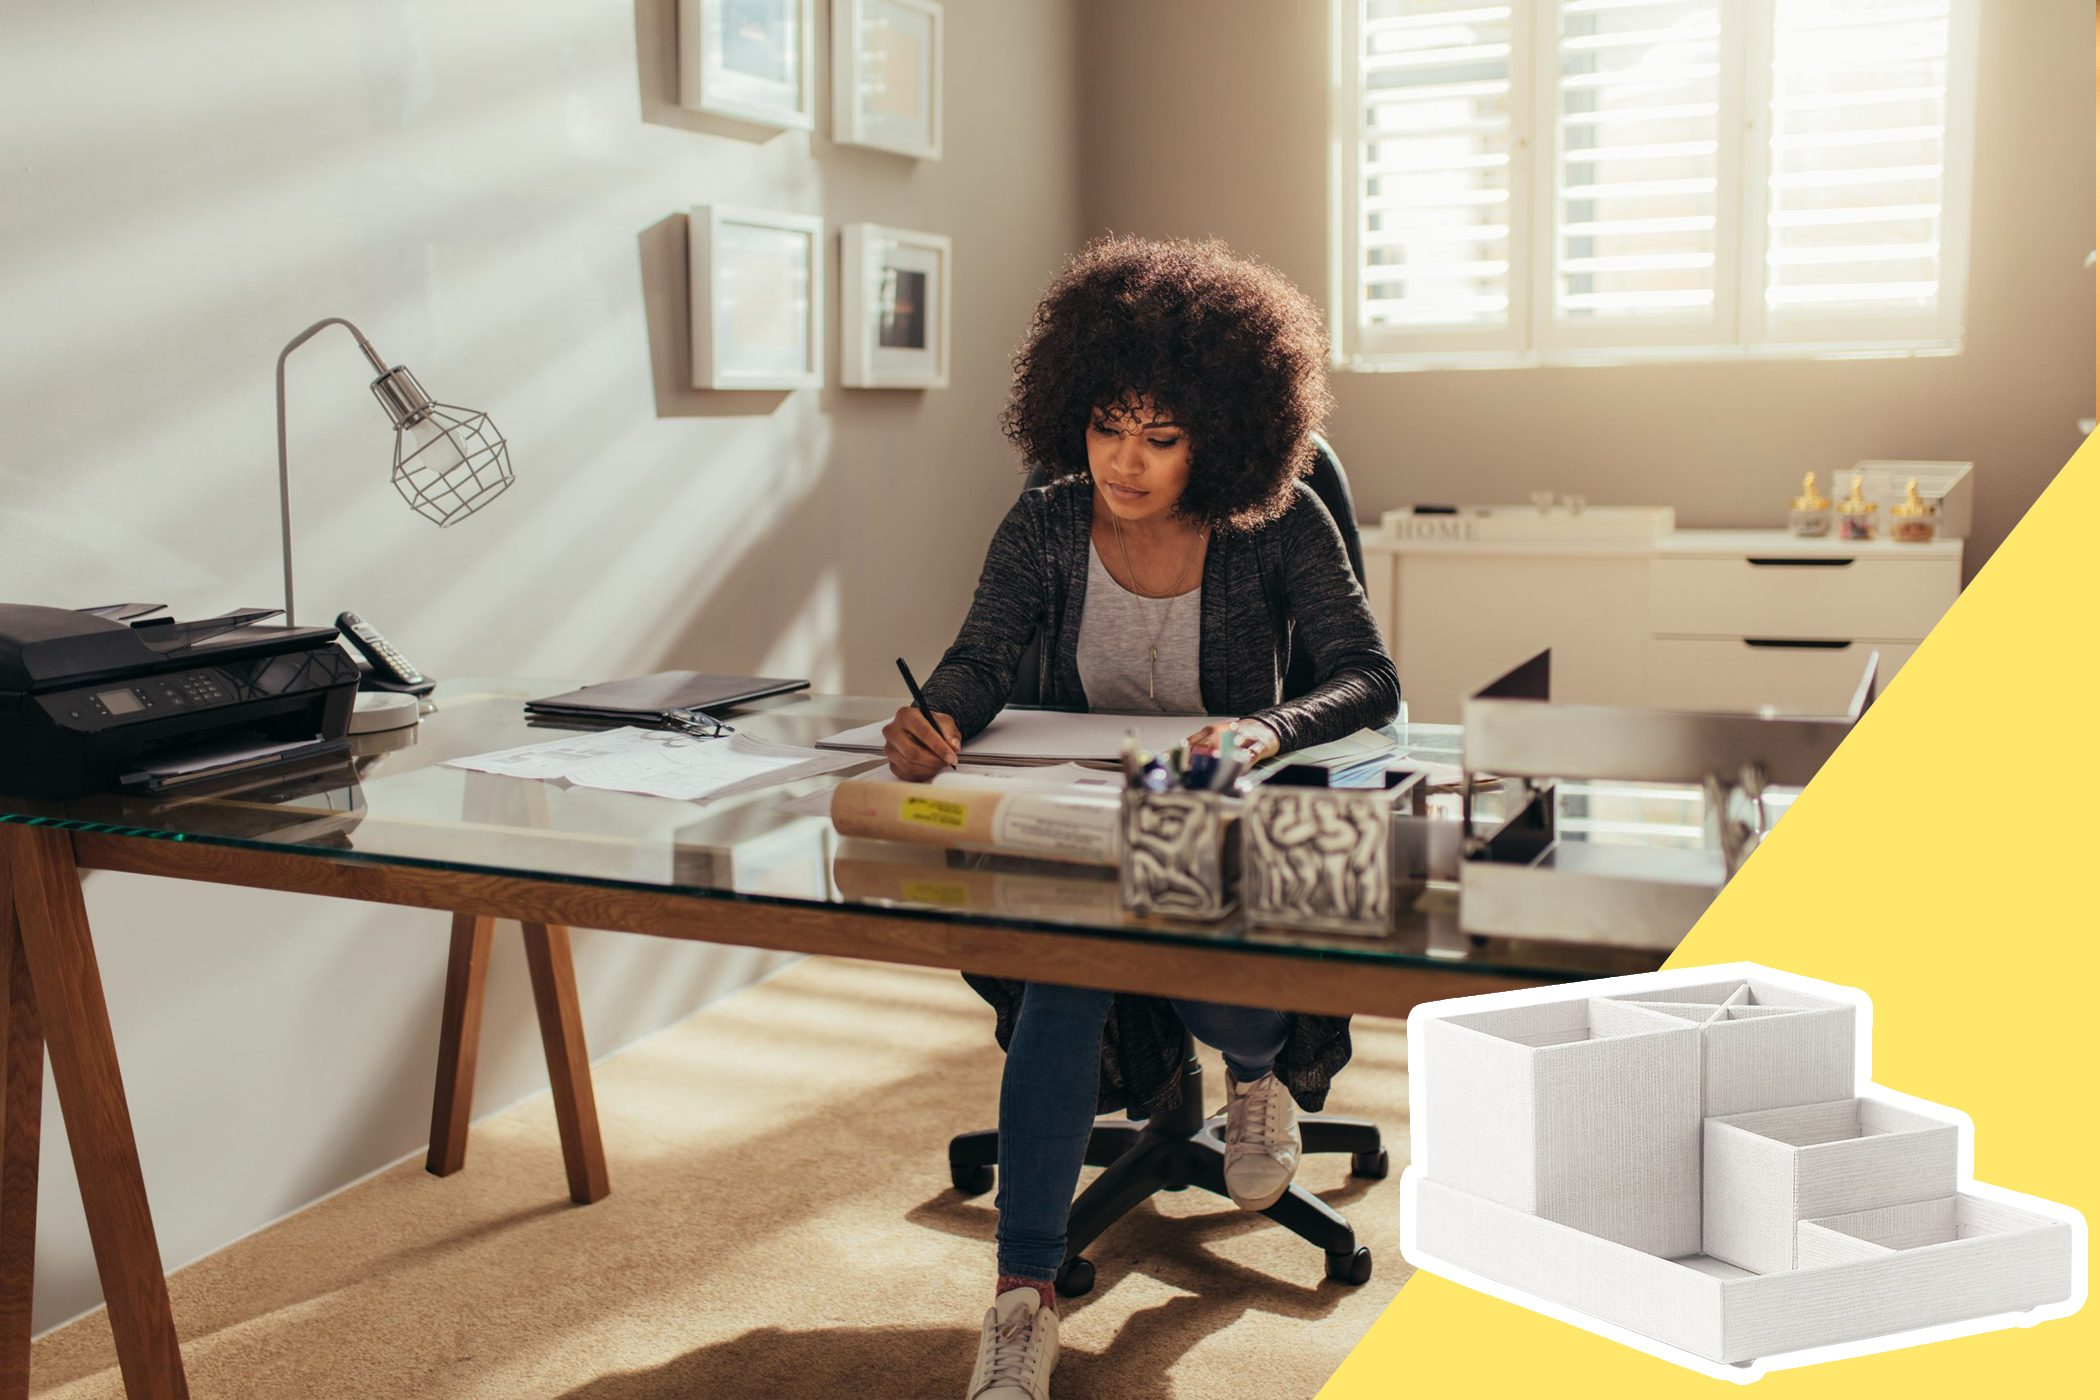 woman at desk with desk organizers